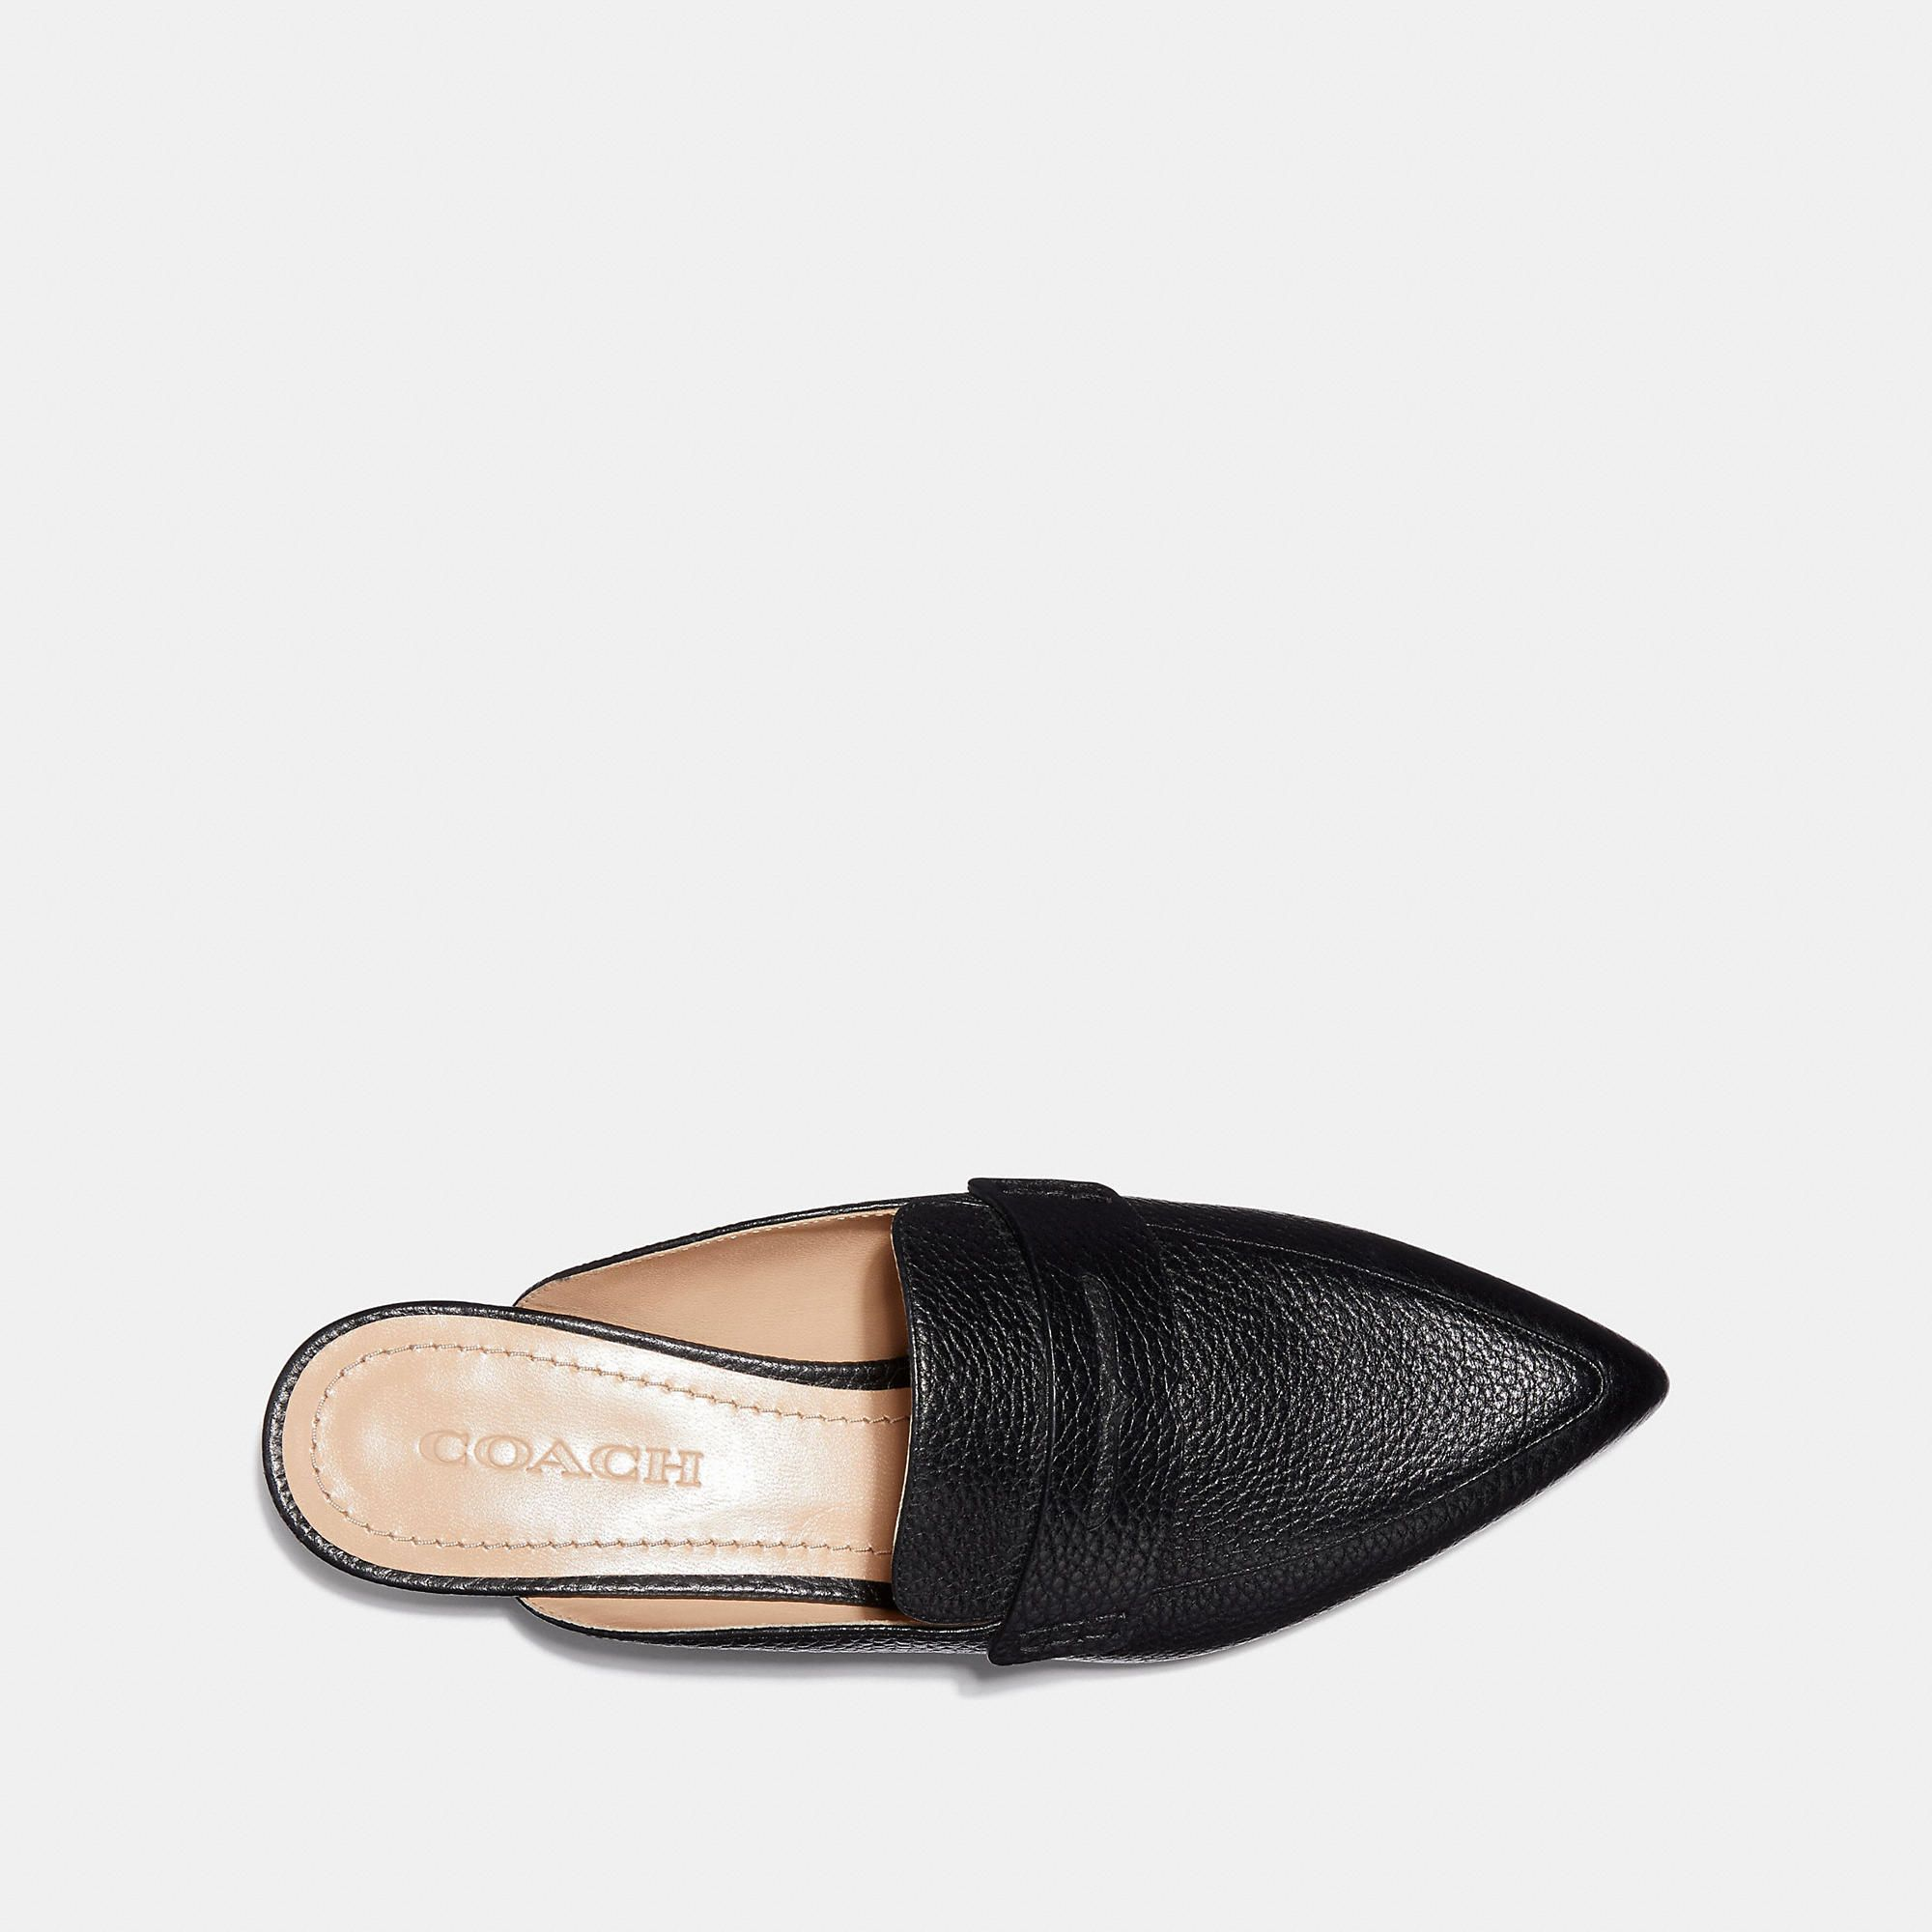 dbdfe0373c COACH Nova Loafer Slide - Women's Size 5 | Products | Loafers, Shoes ...